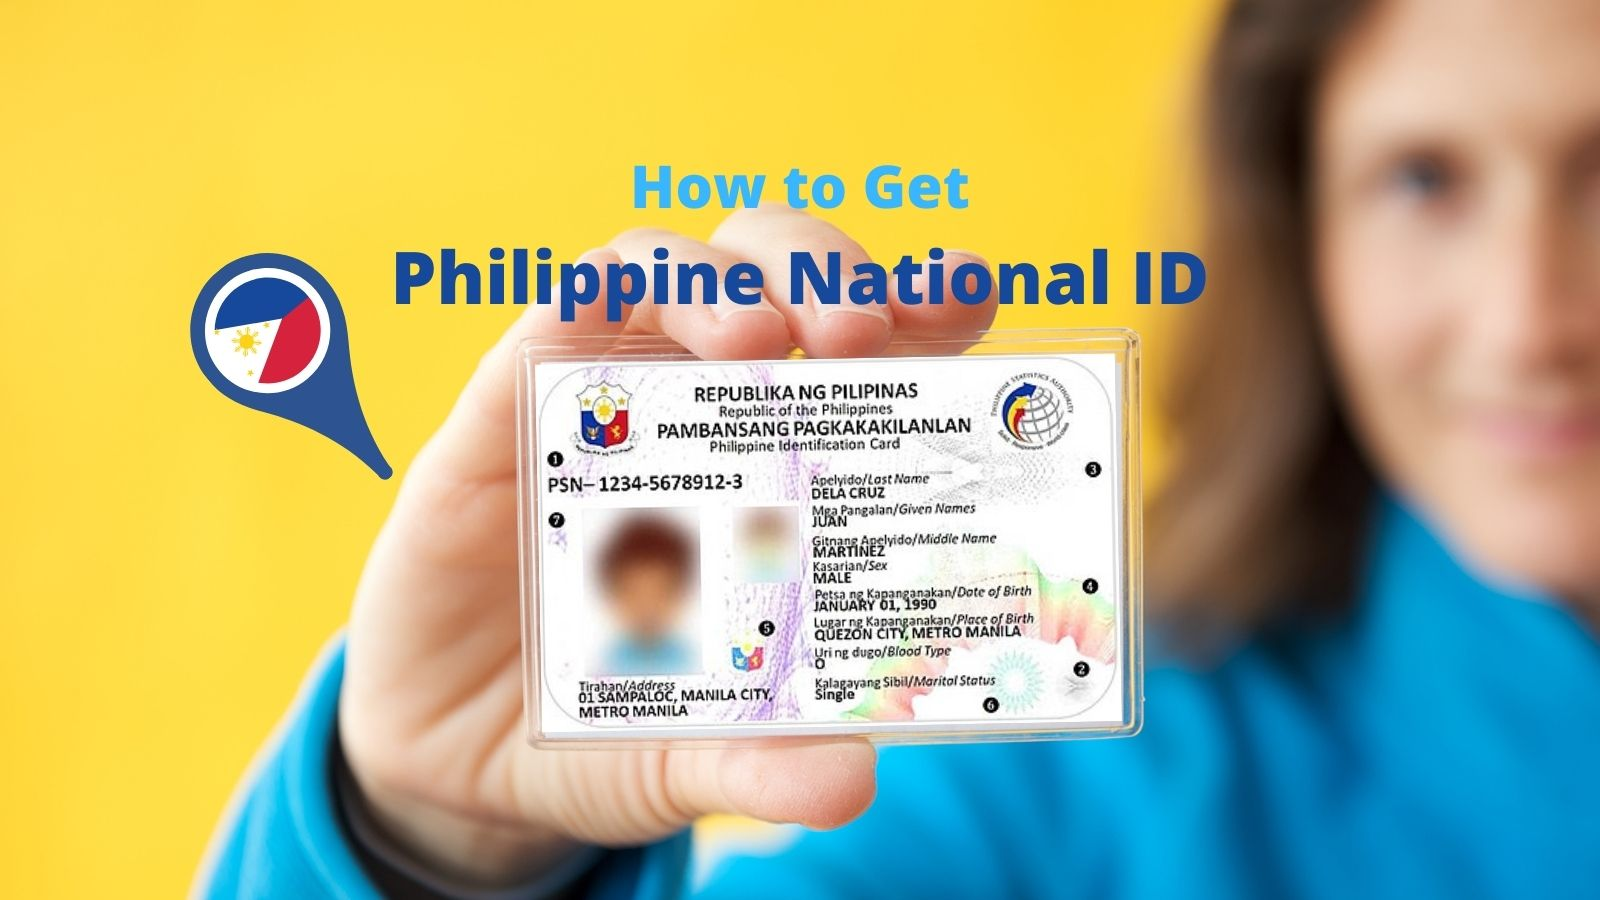 how to get philippine national id card